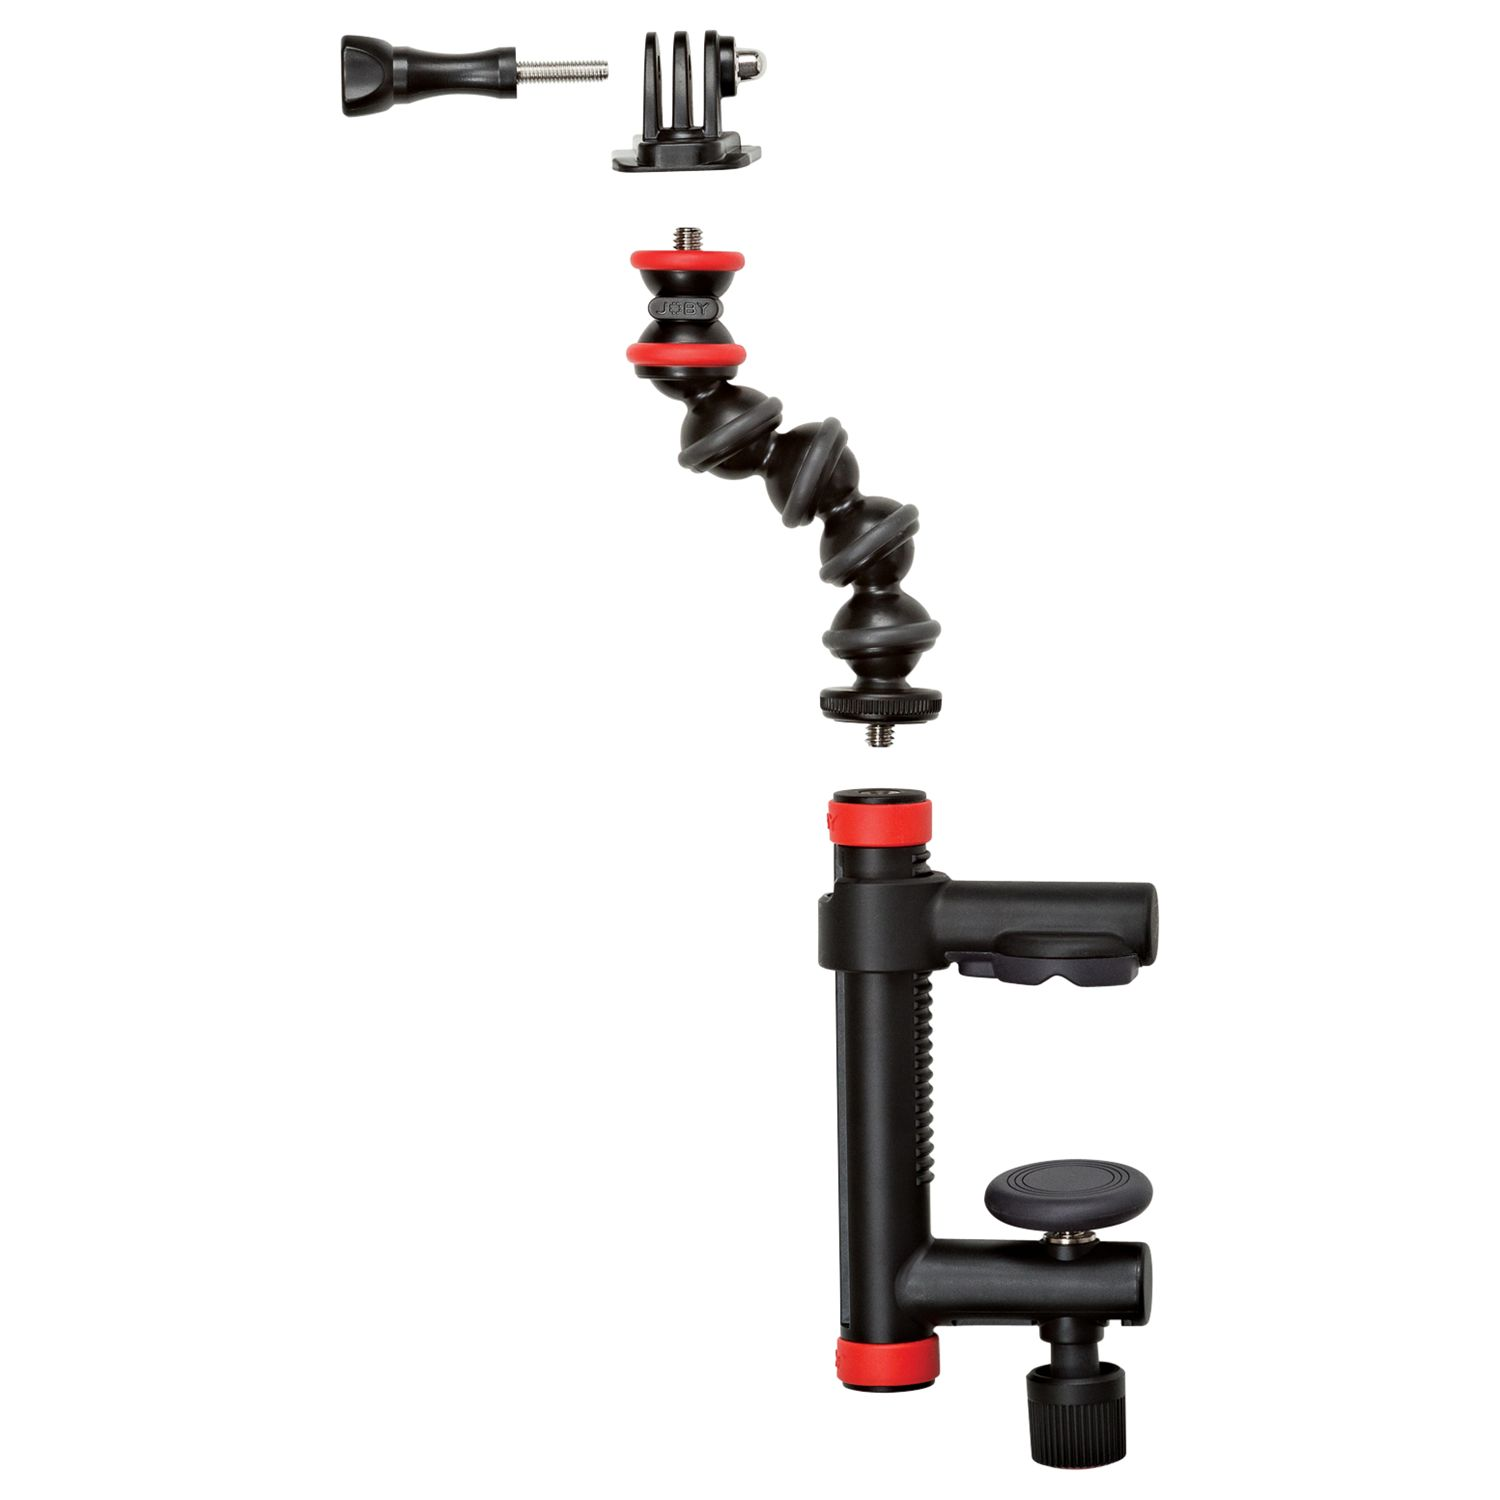 Joby Joby Action Clamp and GorillaPod Arm